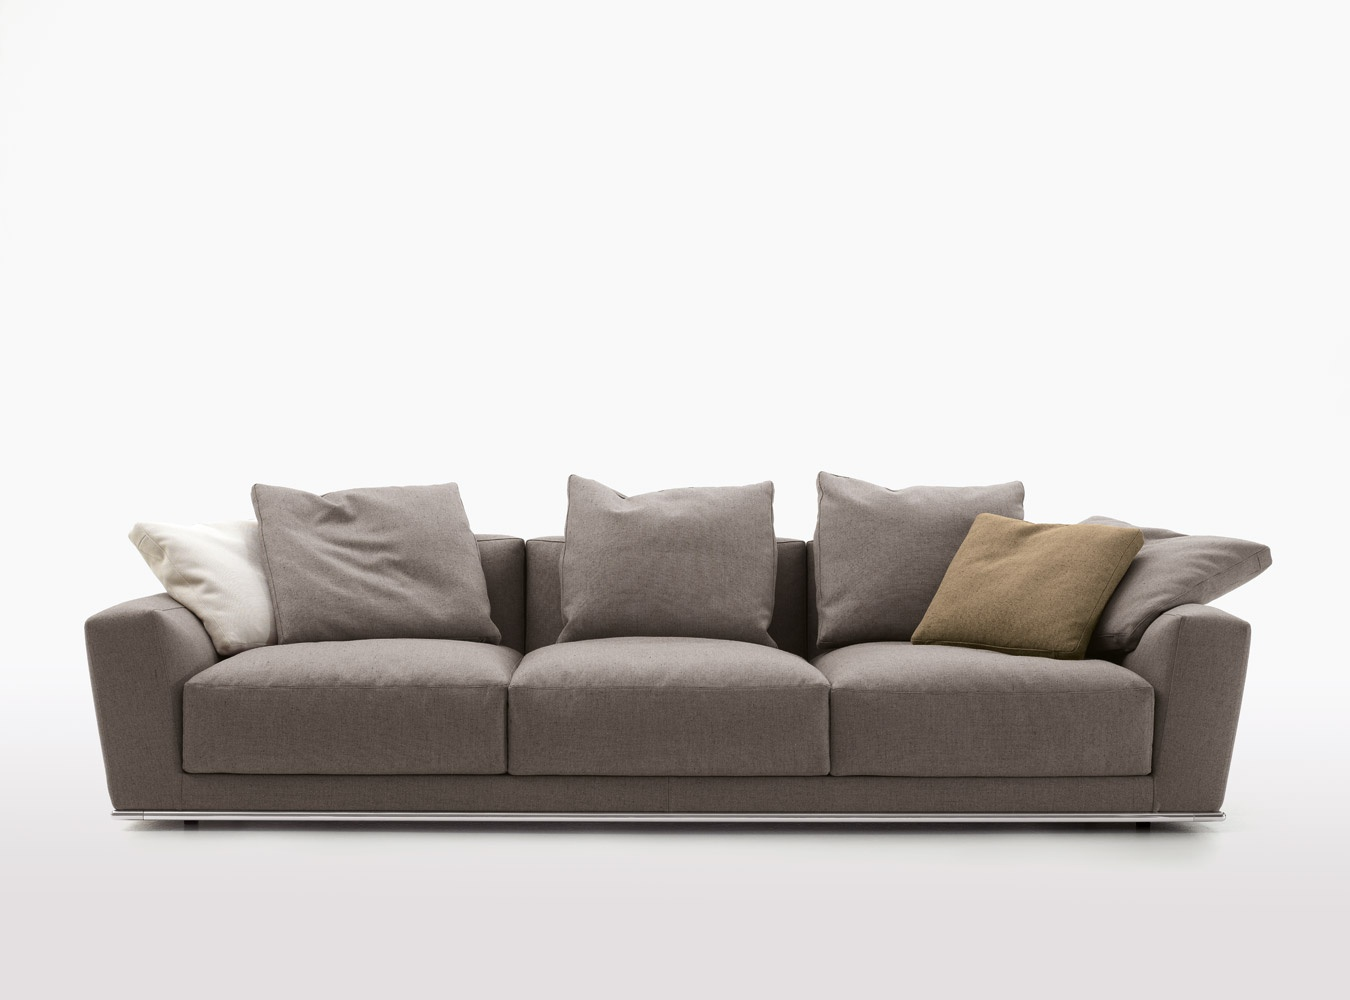 Double Sofa Luis B B Italia Luxury Furniture Mr